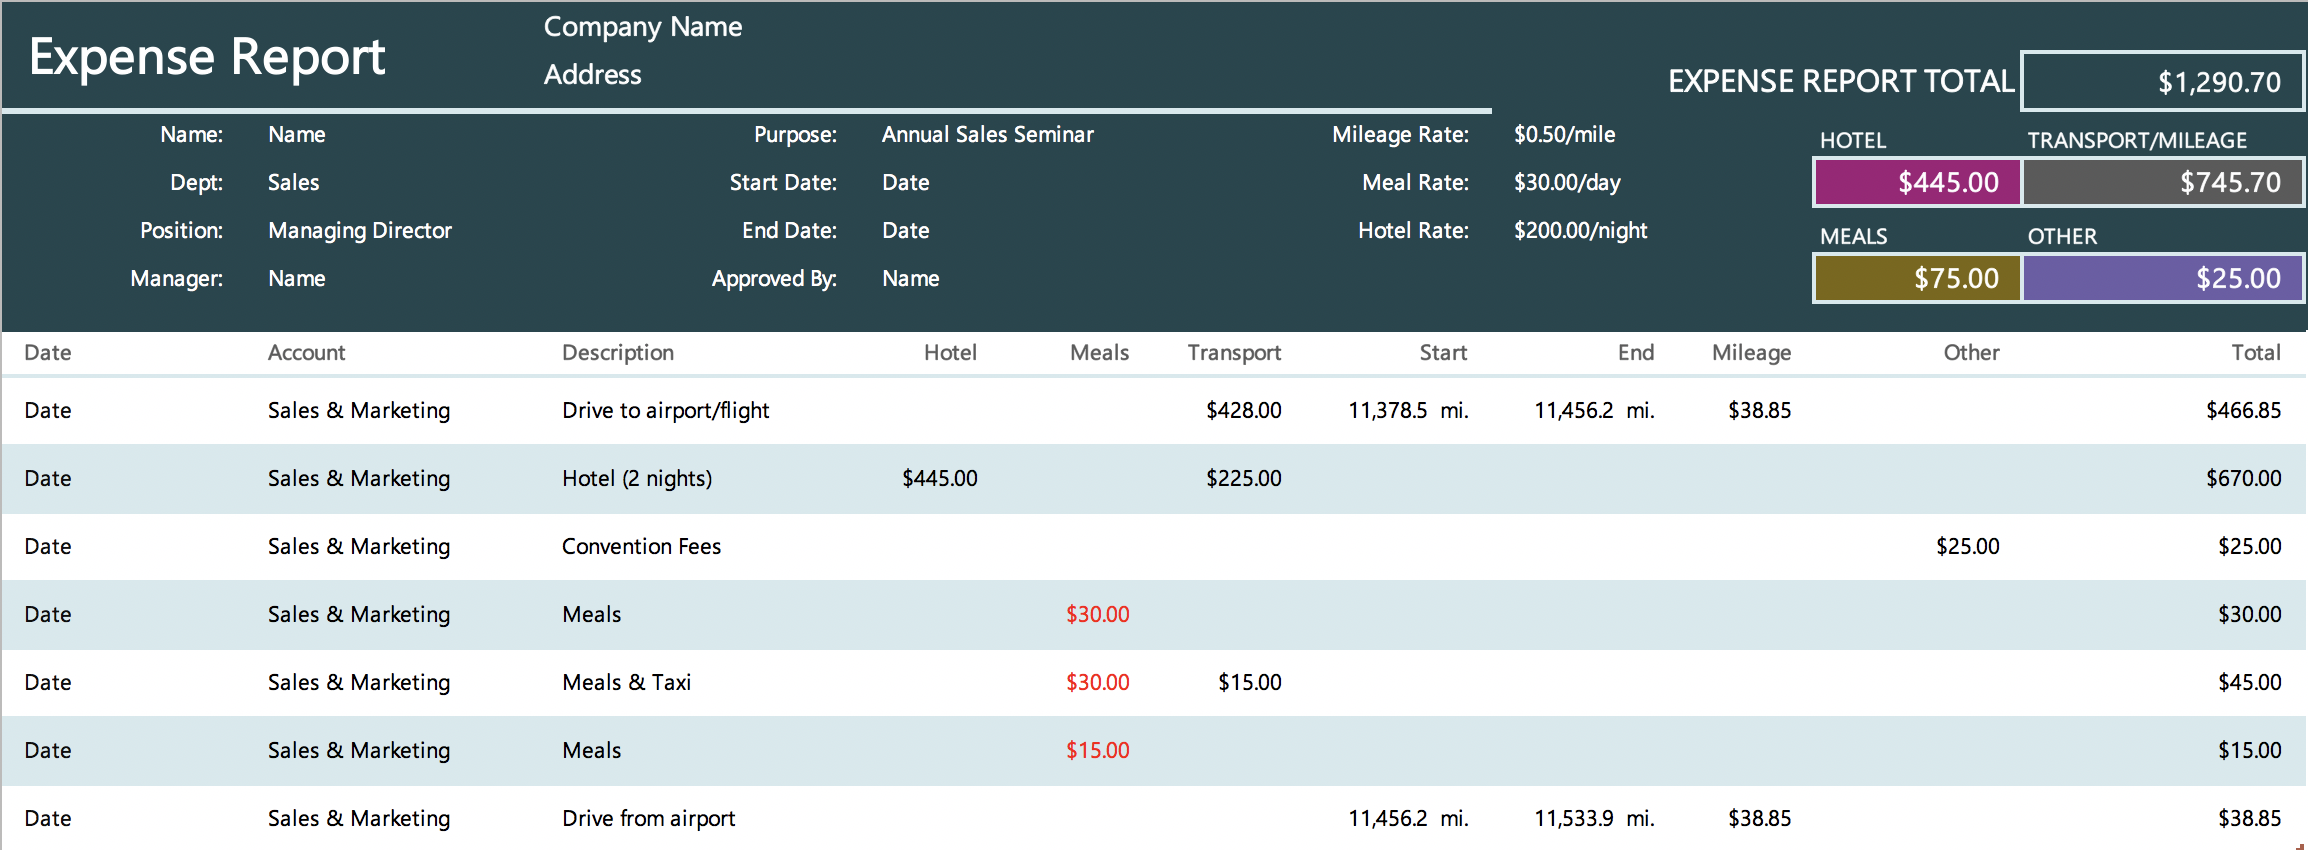 Excel Expense Report Template Free Download from miro.medium.com